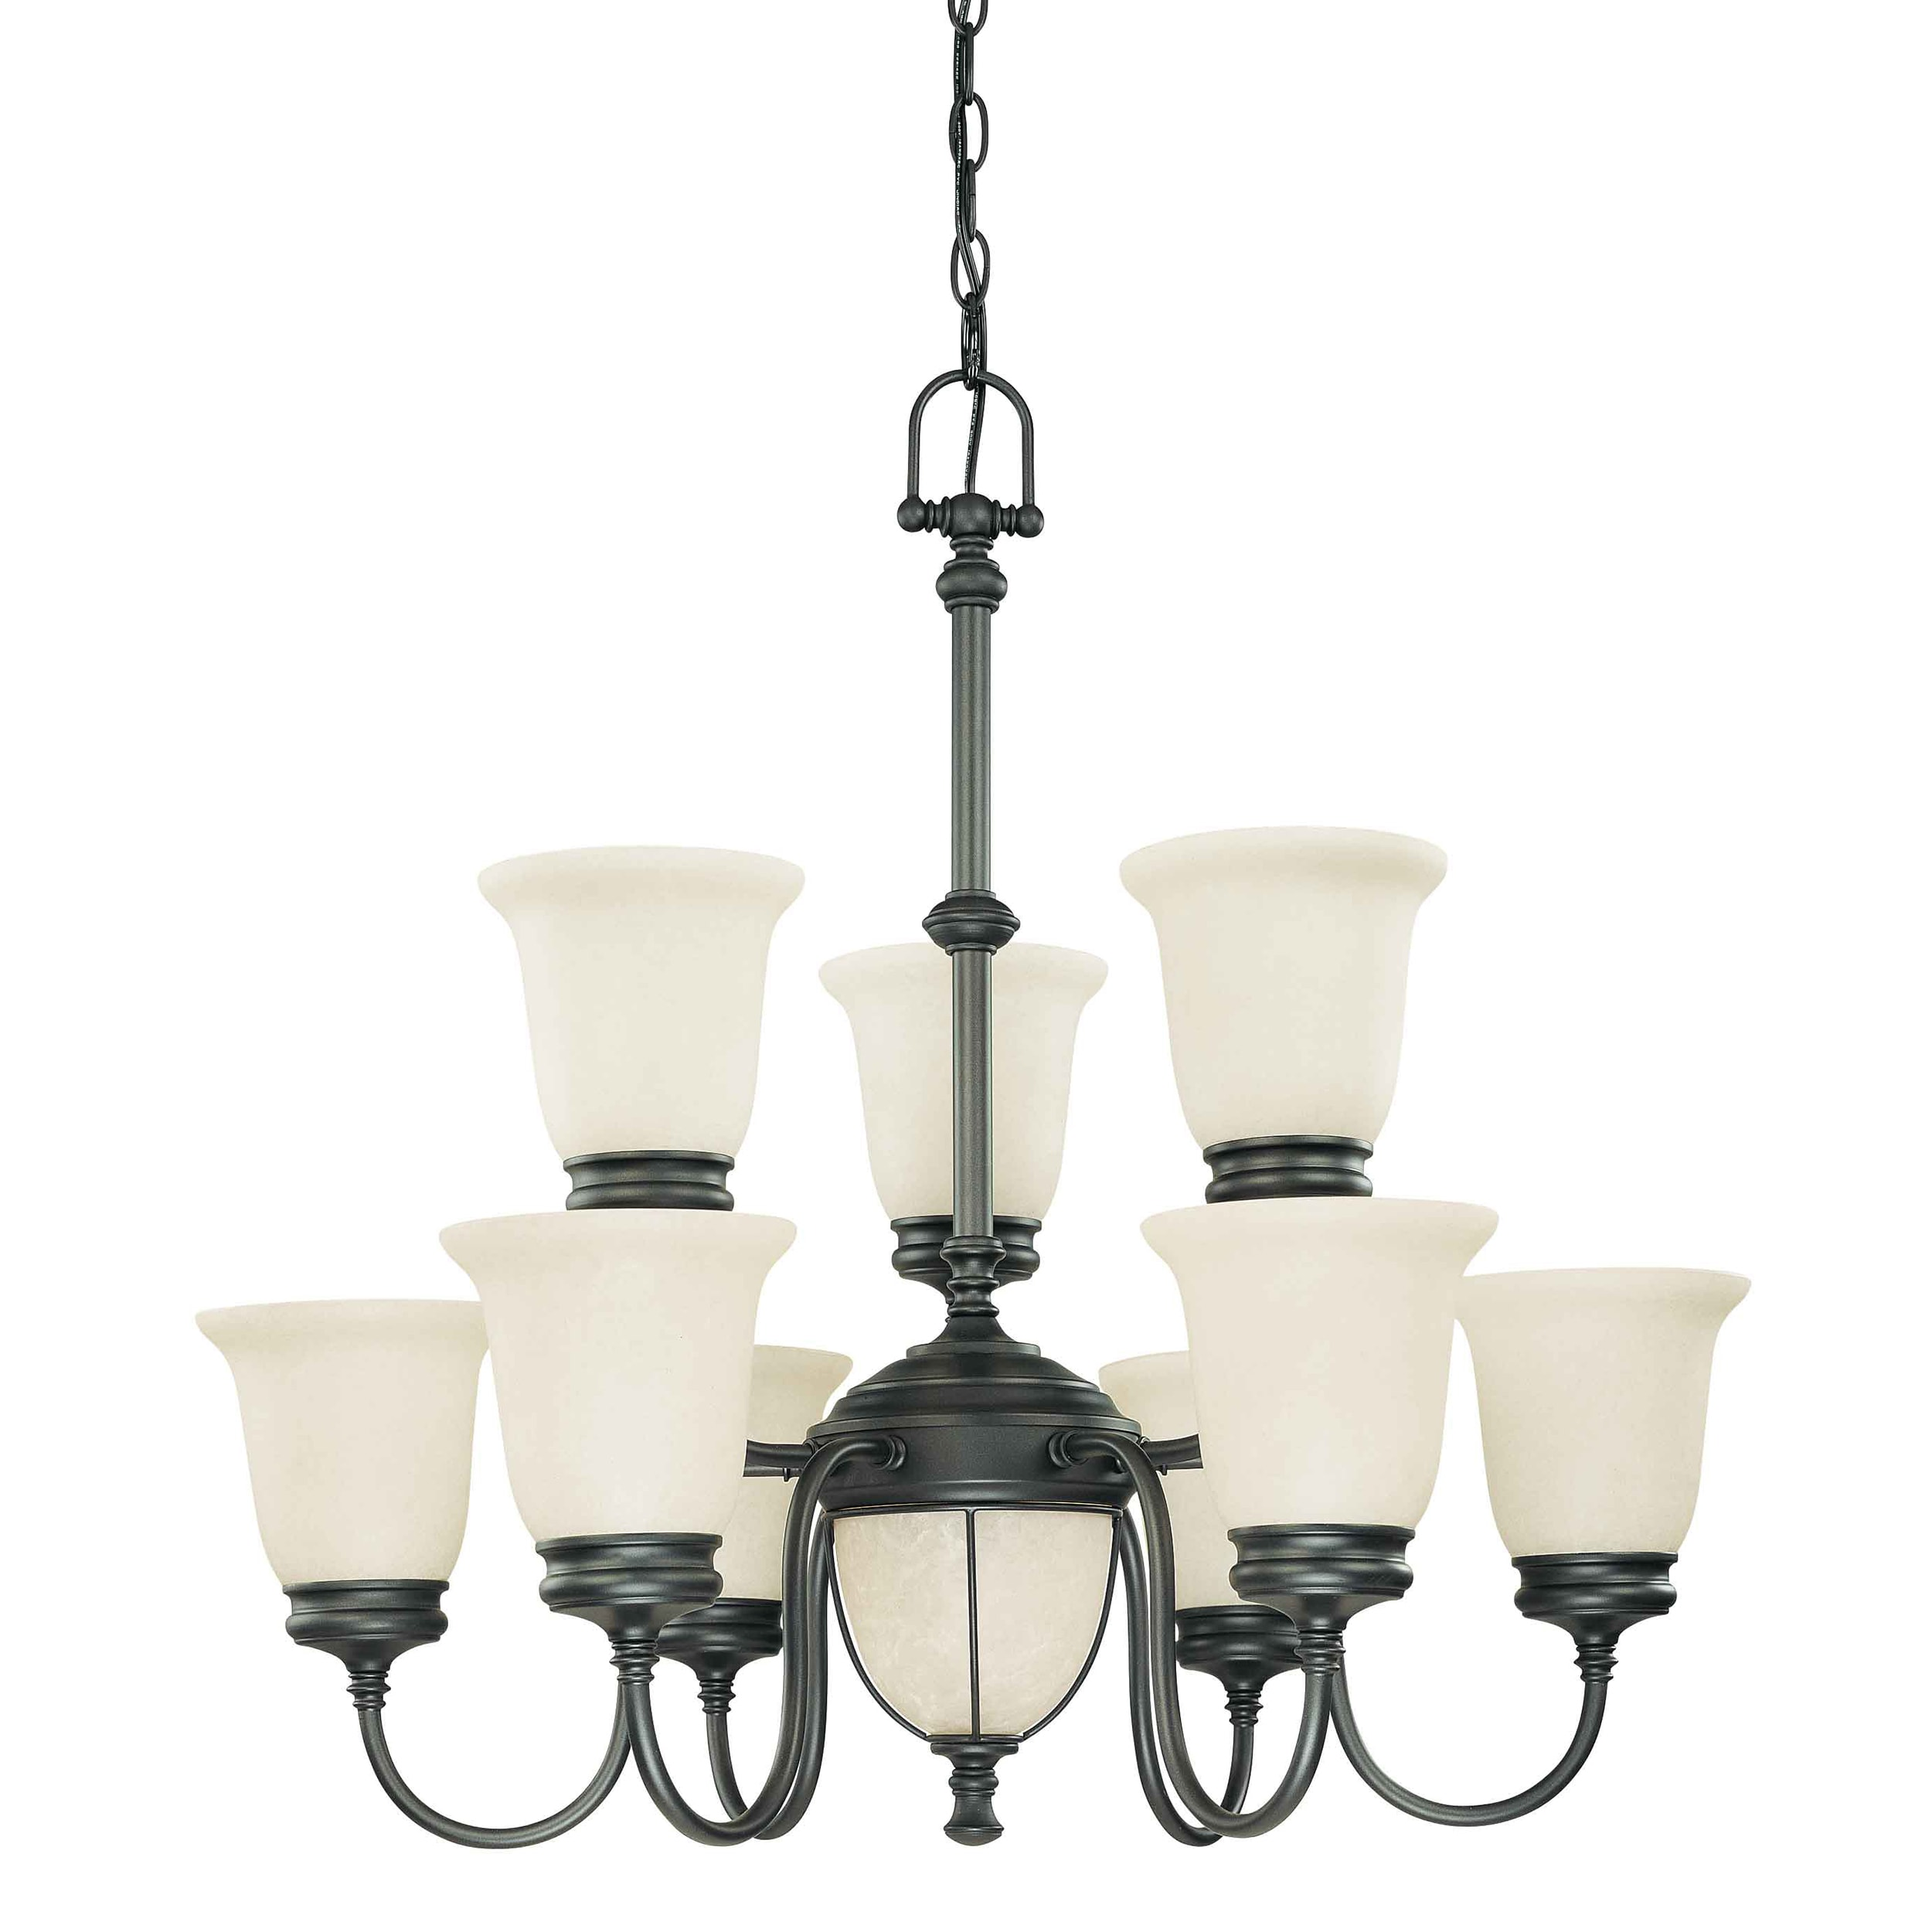 Salem 7 + 2 Light Aged Bronze With Biscotti Glass Chandelier - Thumbnail 0